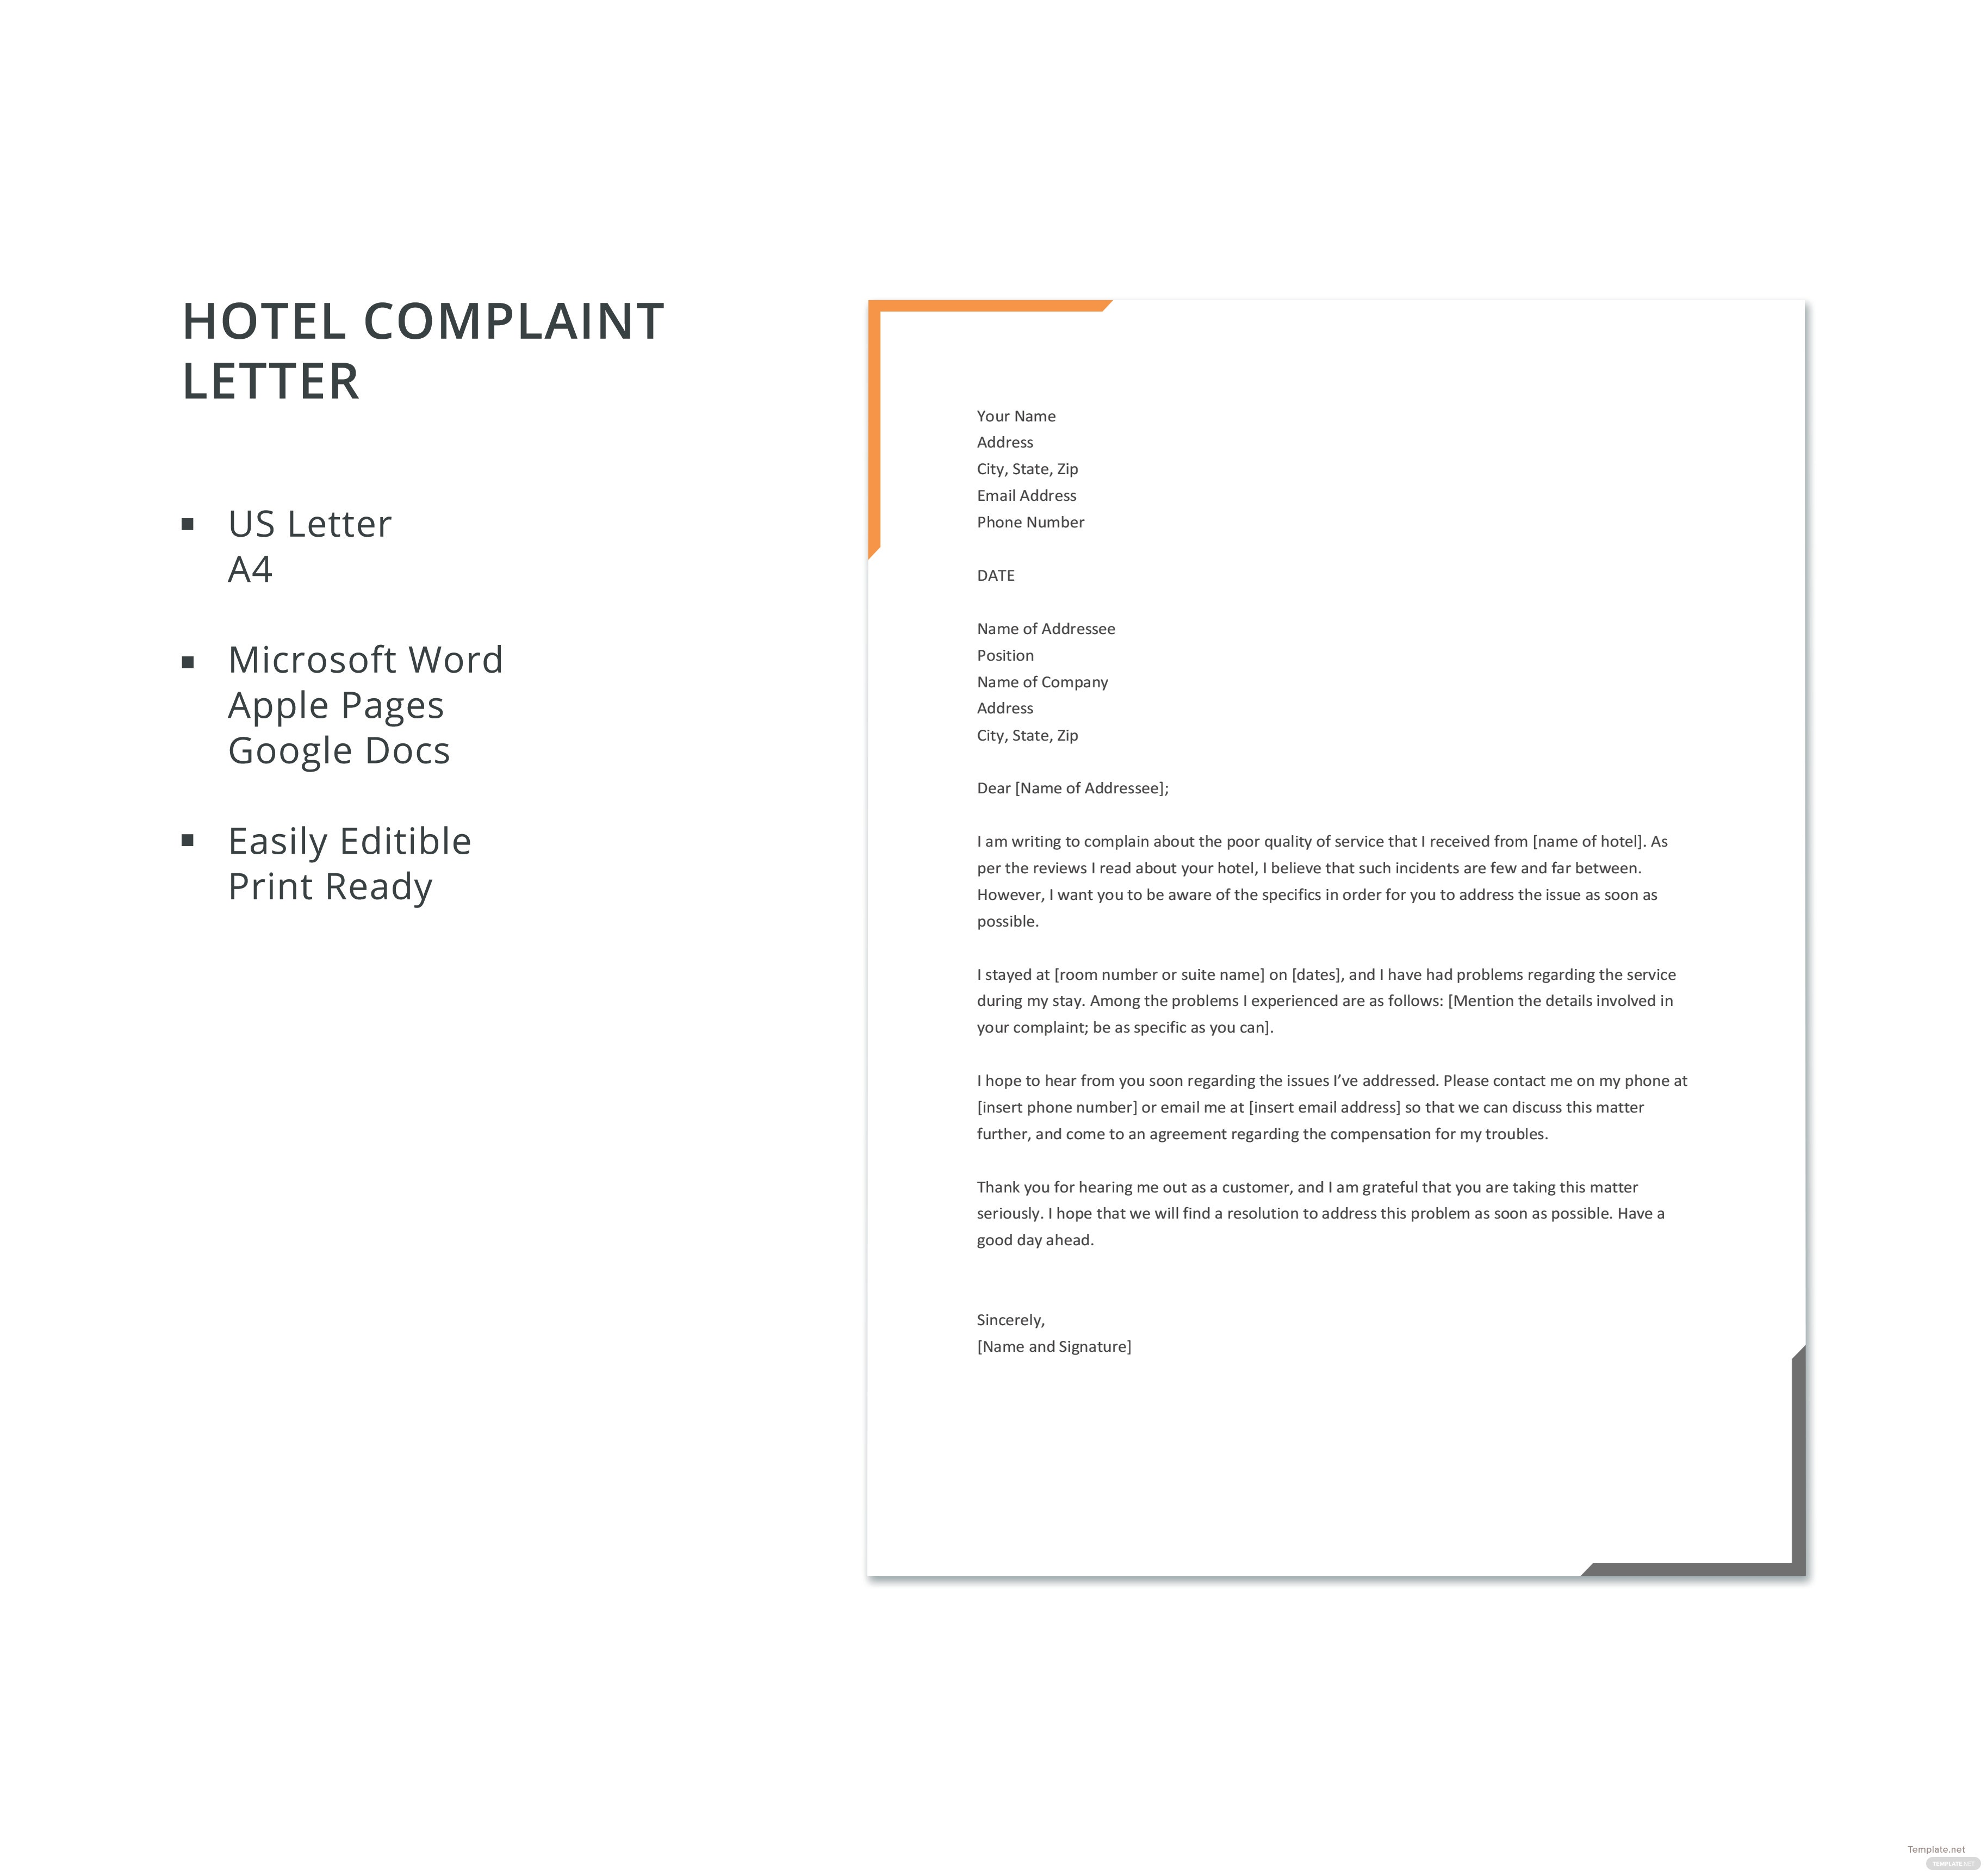 Free hotel complaint letter template in microsoft word apple pages click to see full template hotel complaint letter spiritdancerdesigns Images